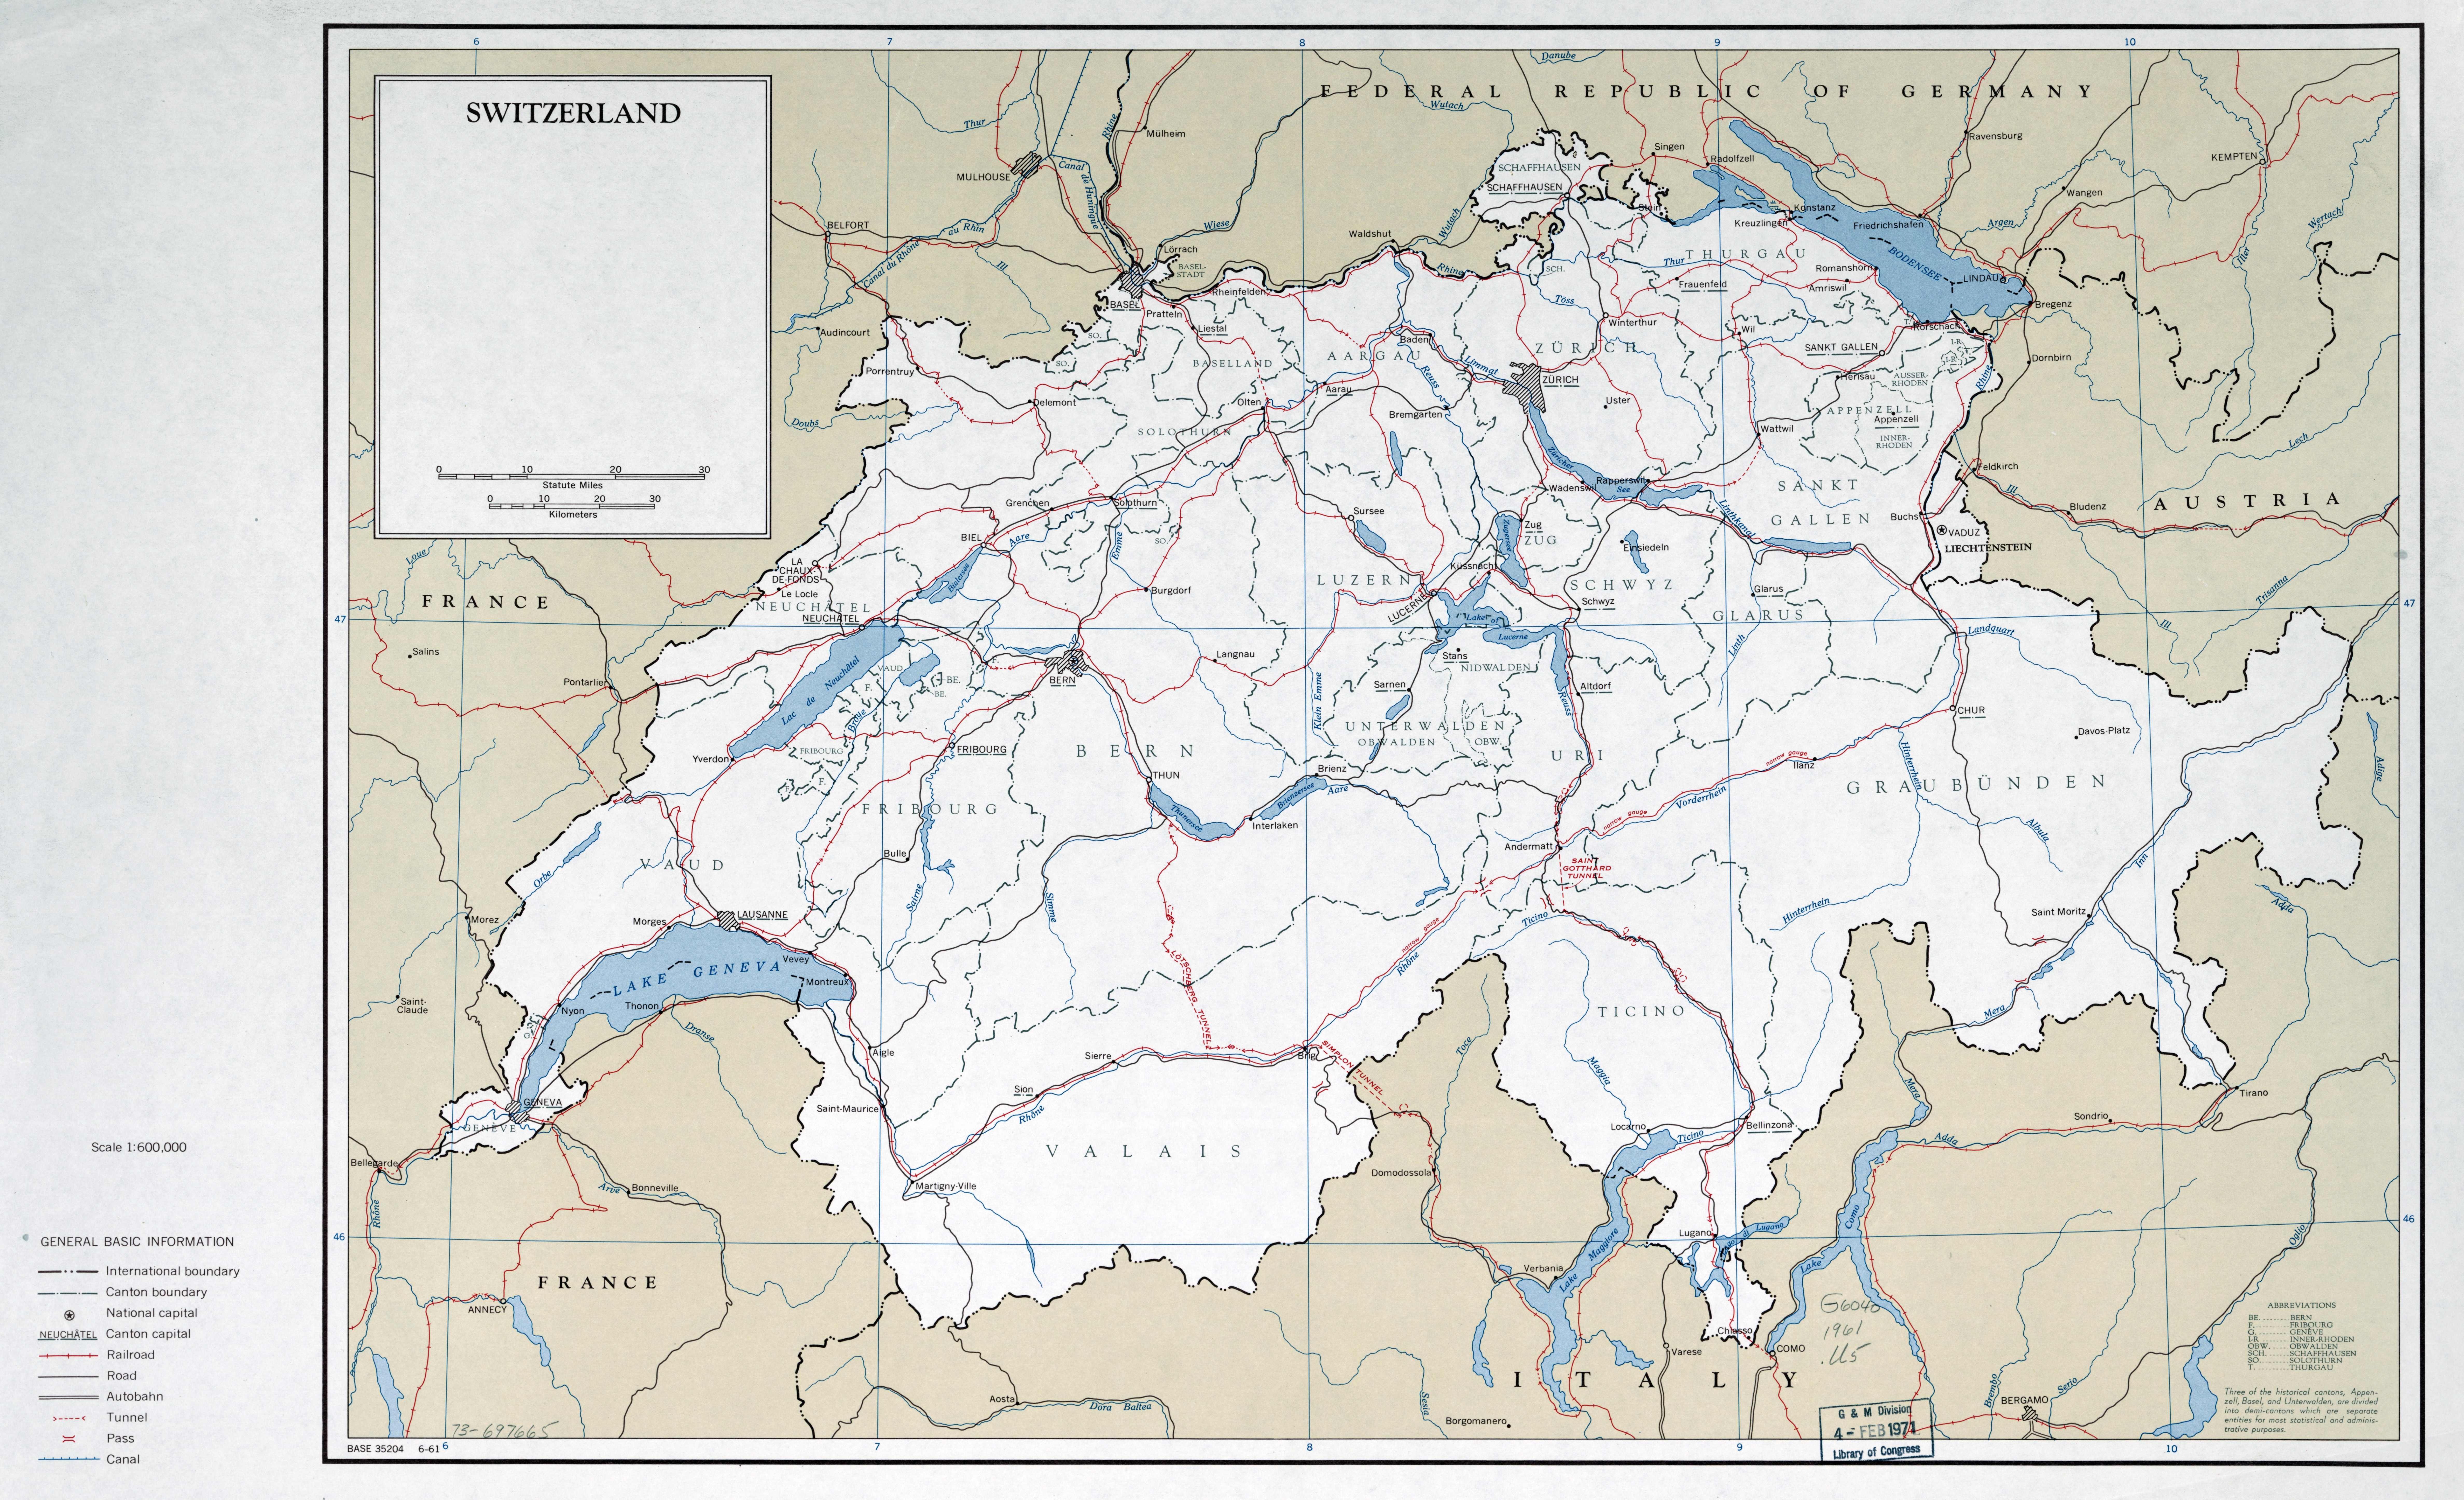 Large scale political and administrative map of Switzerland with